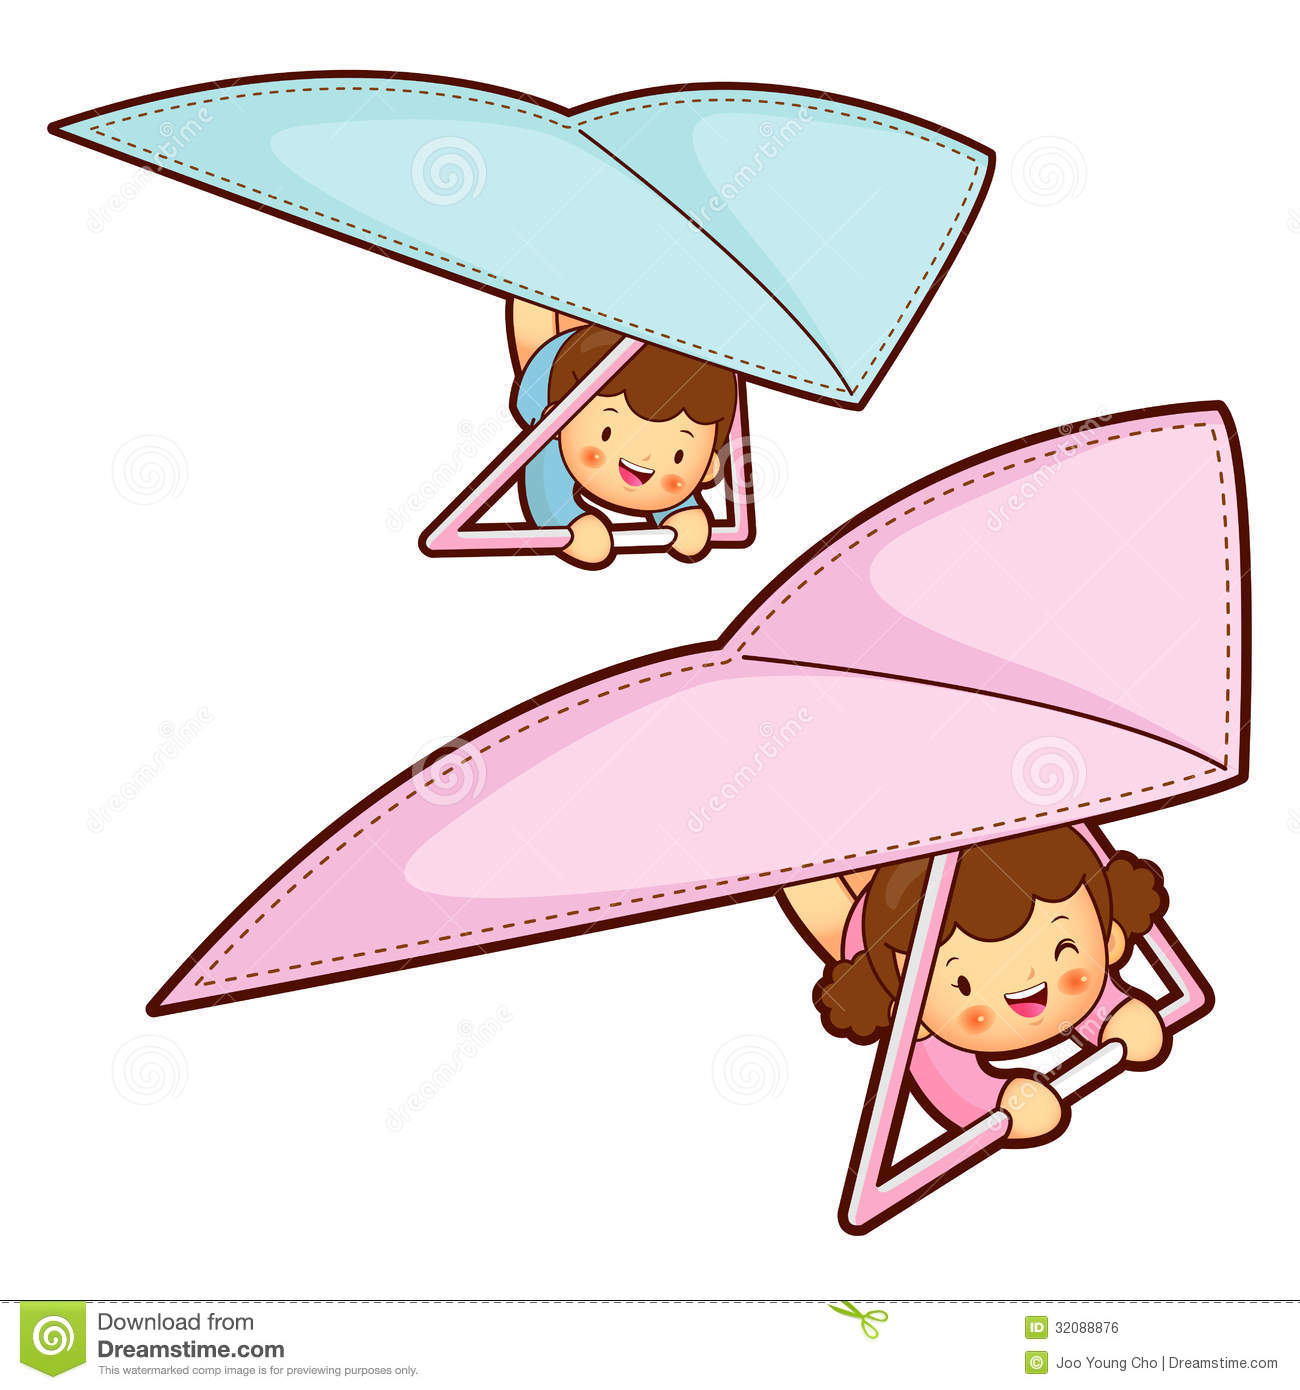 Boy And Girl Is Riding A Hang Gliding In The Sky. Education And.